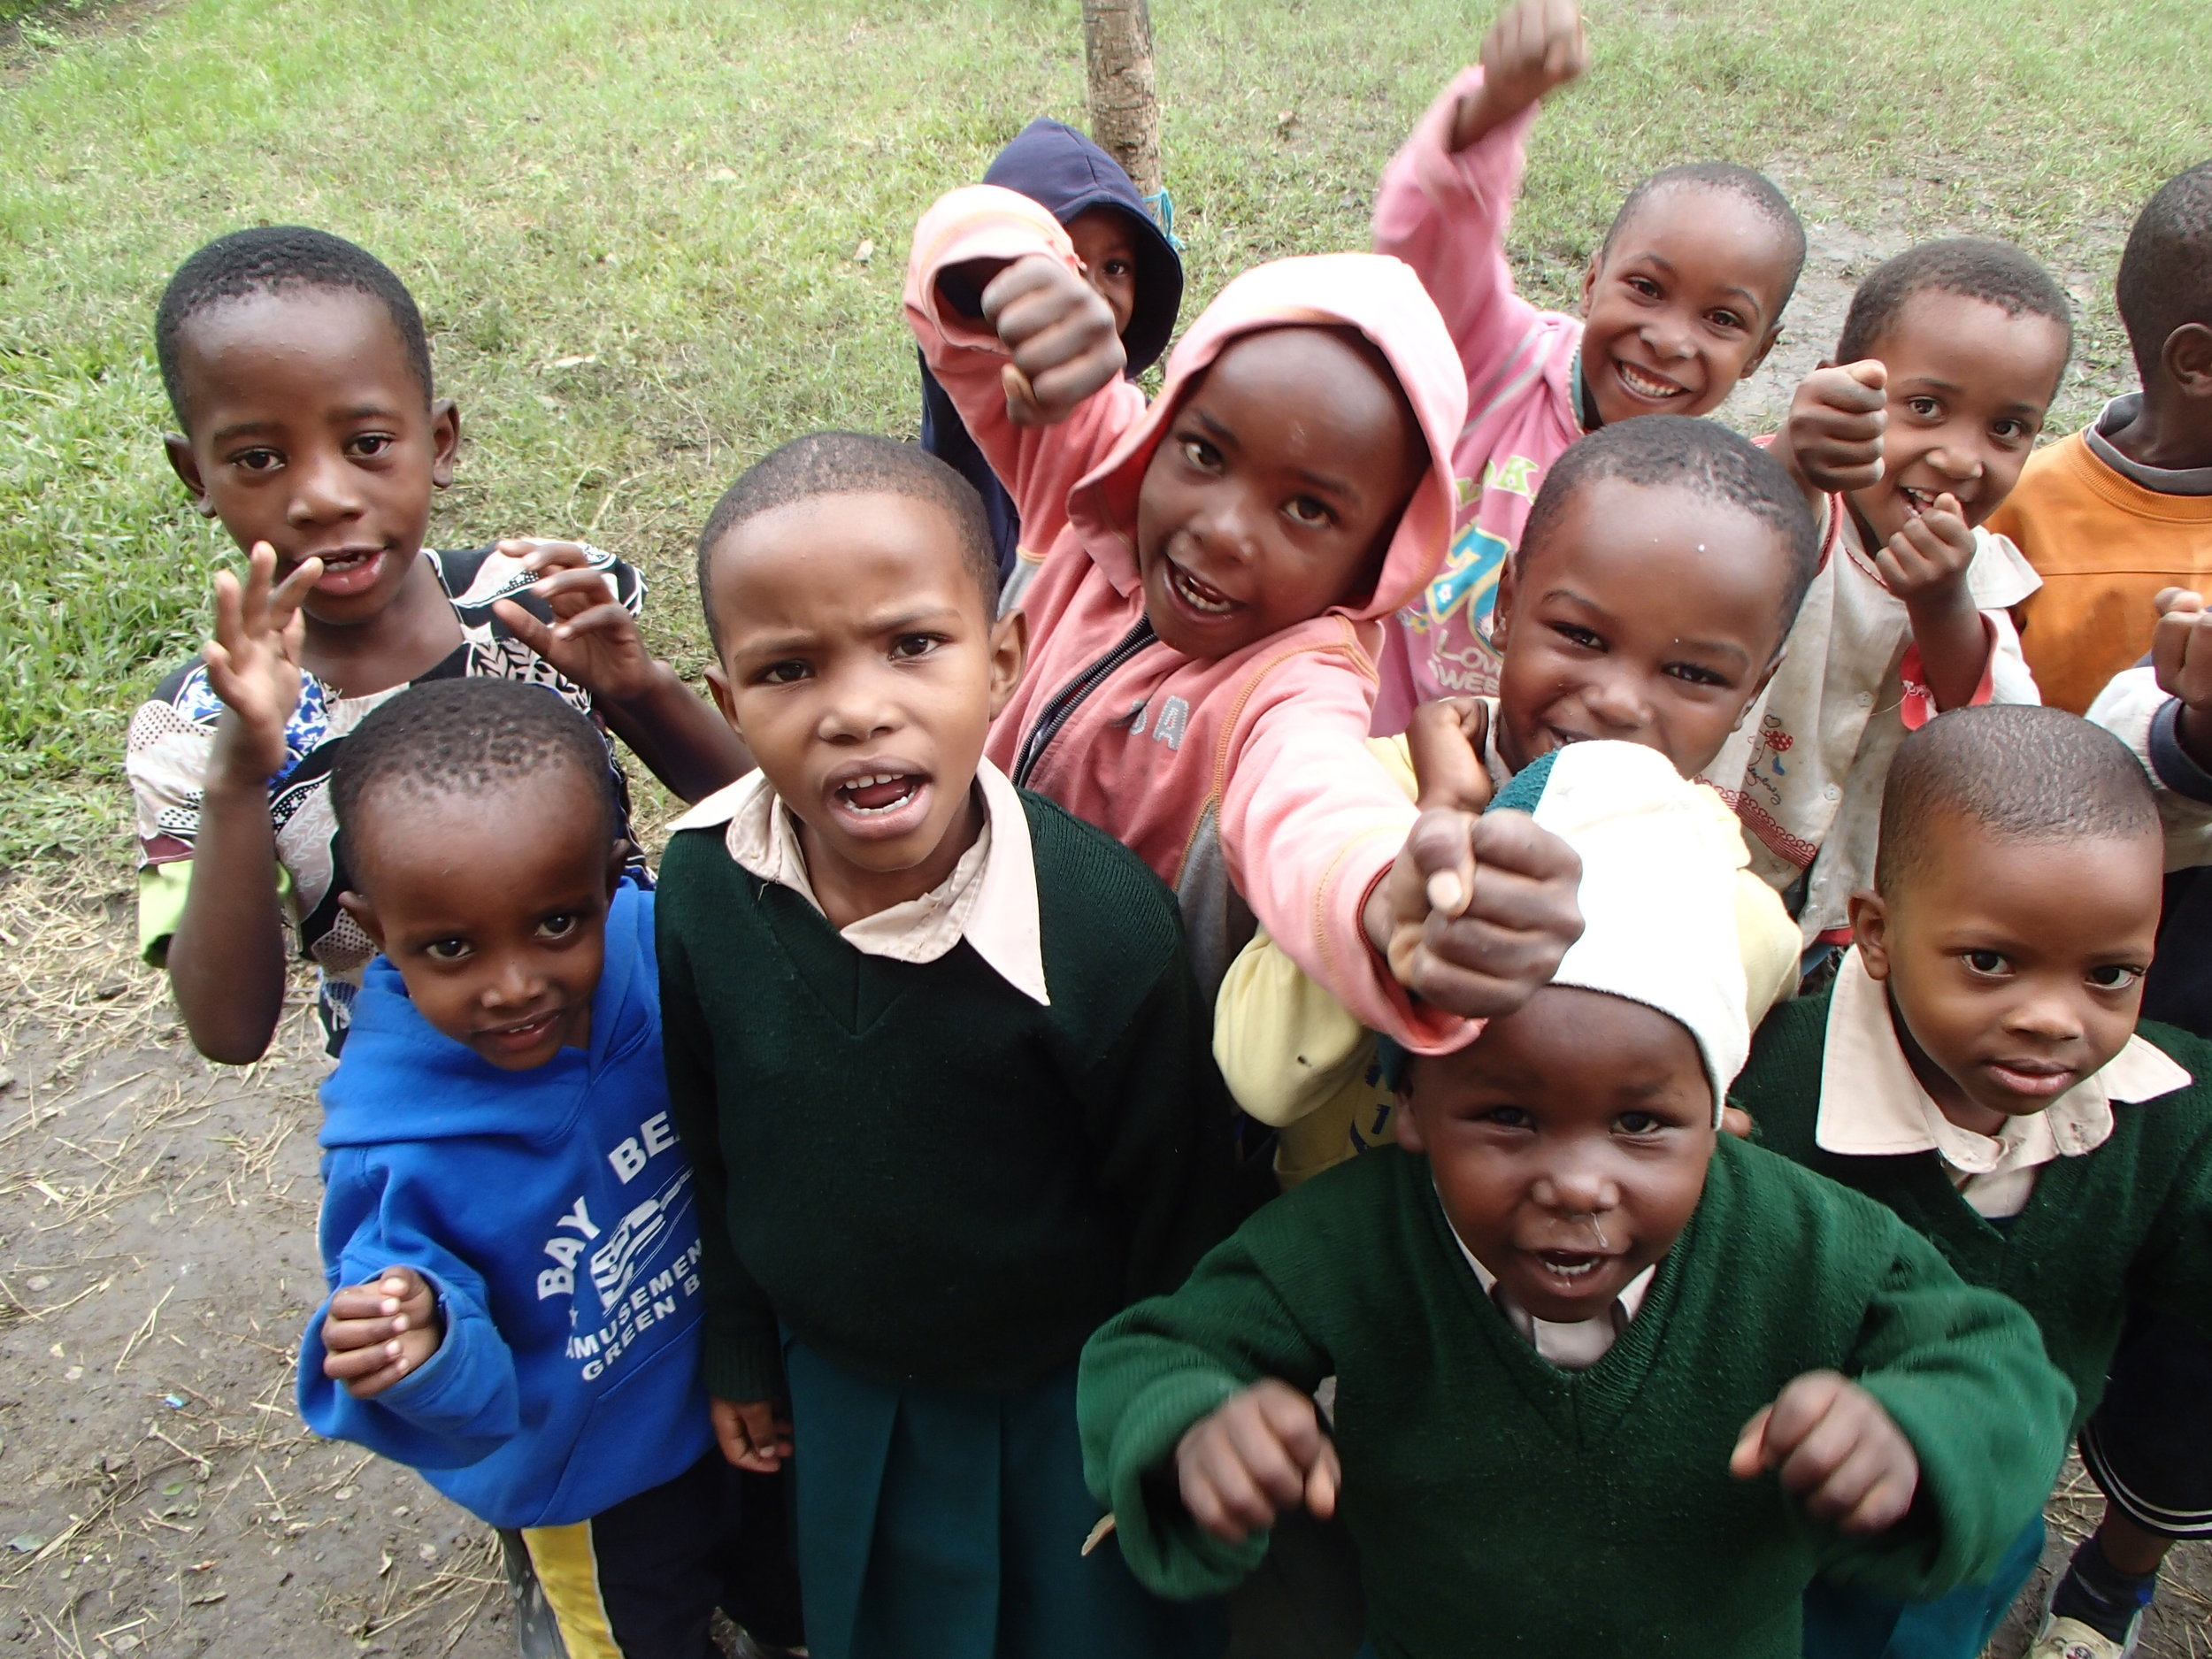 And these amazing kids were such a big part of my life while I was there.   www.afroplanfoundation.com